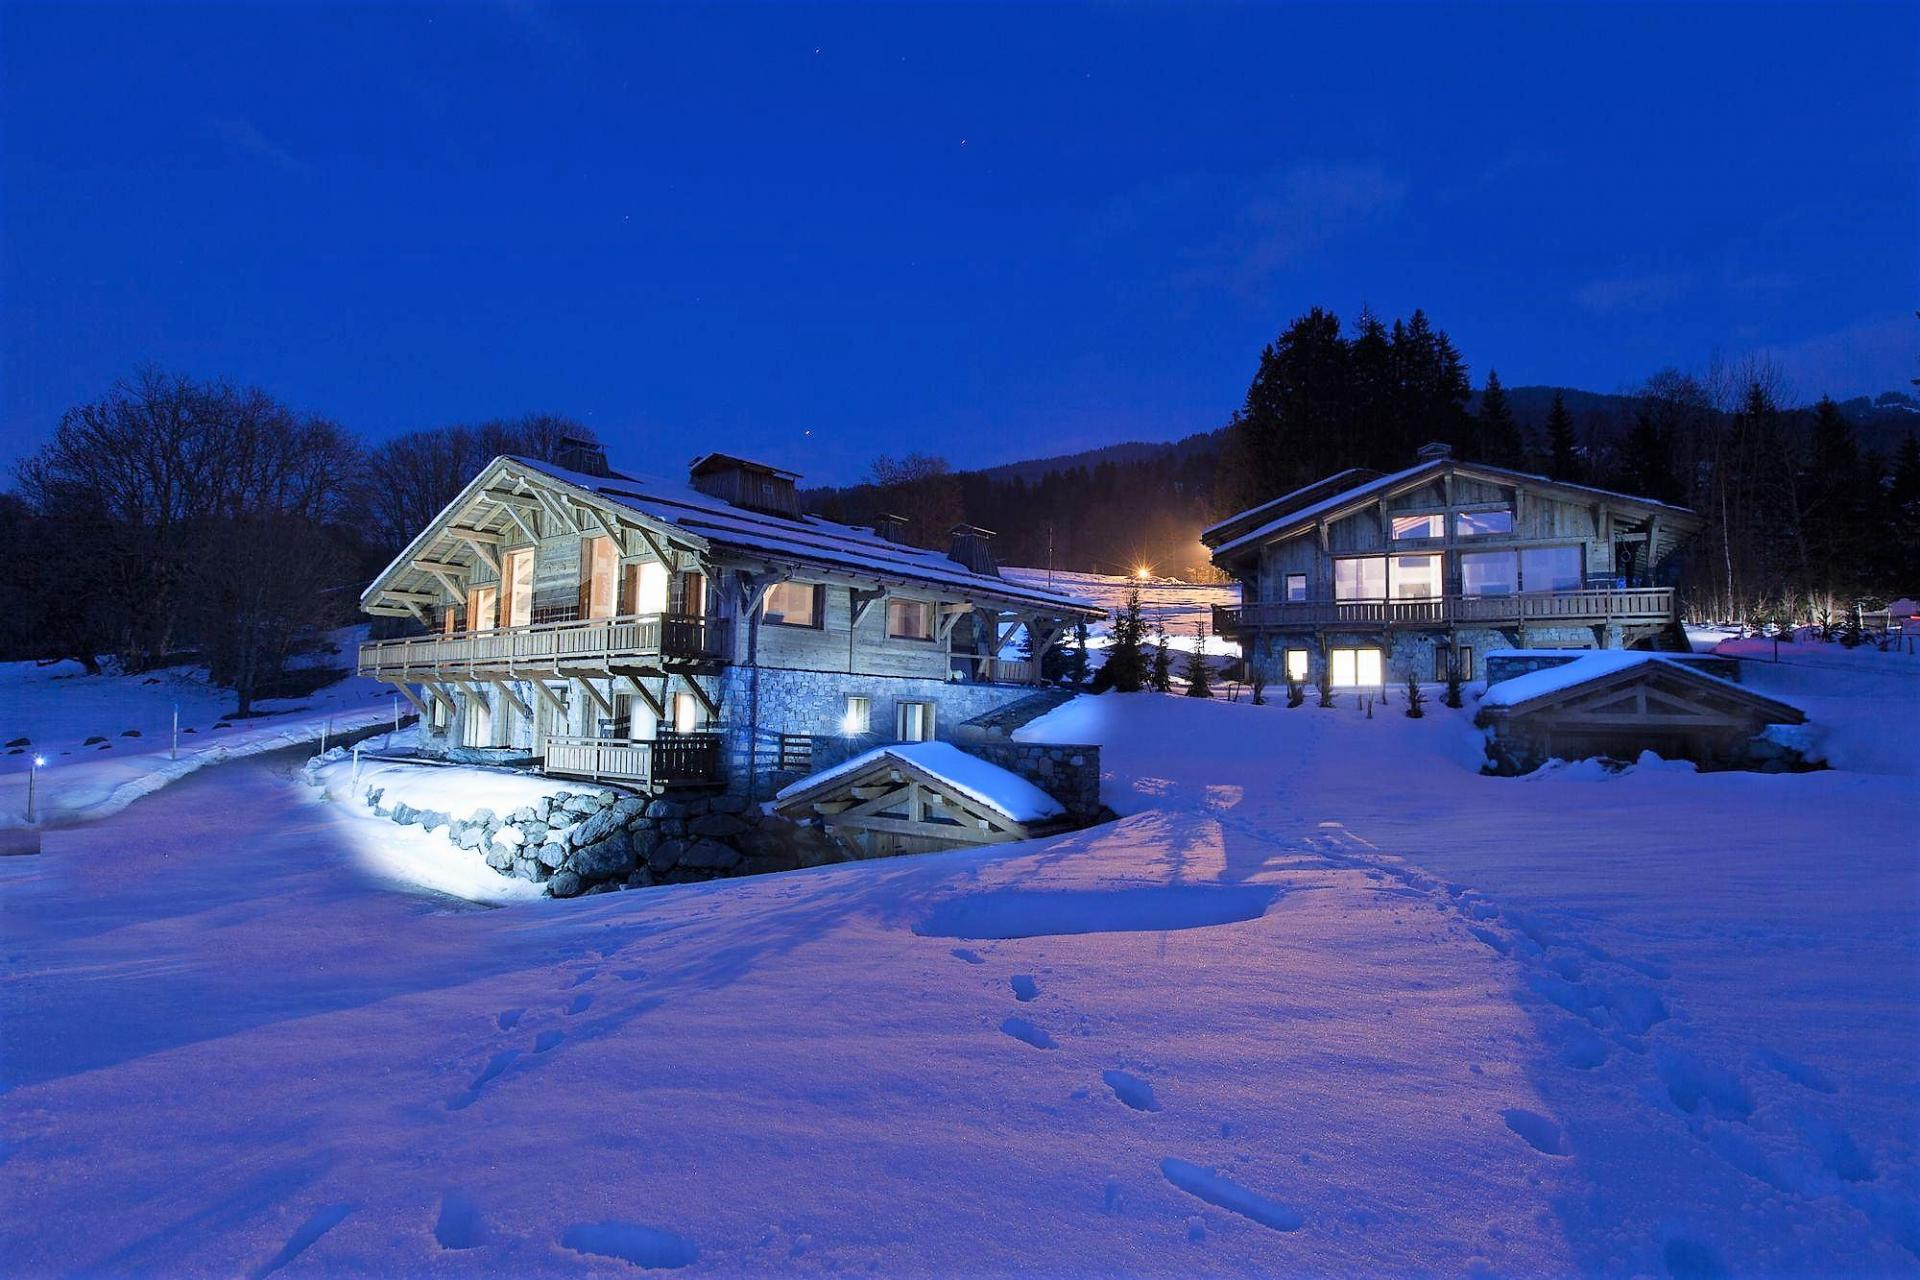 CHALET DES CHOZEAUX BY NIGHT IN MEGEVE